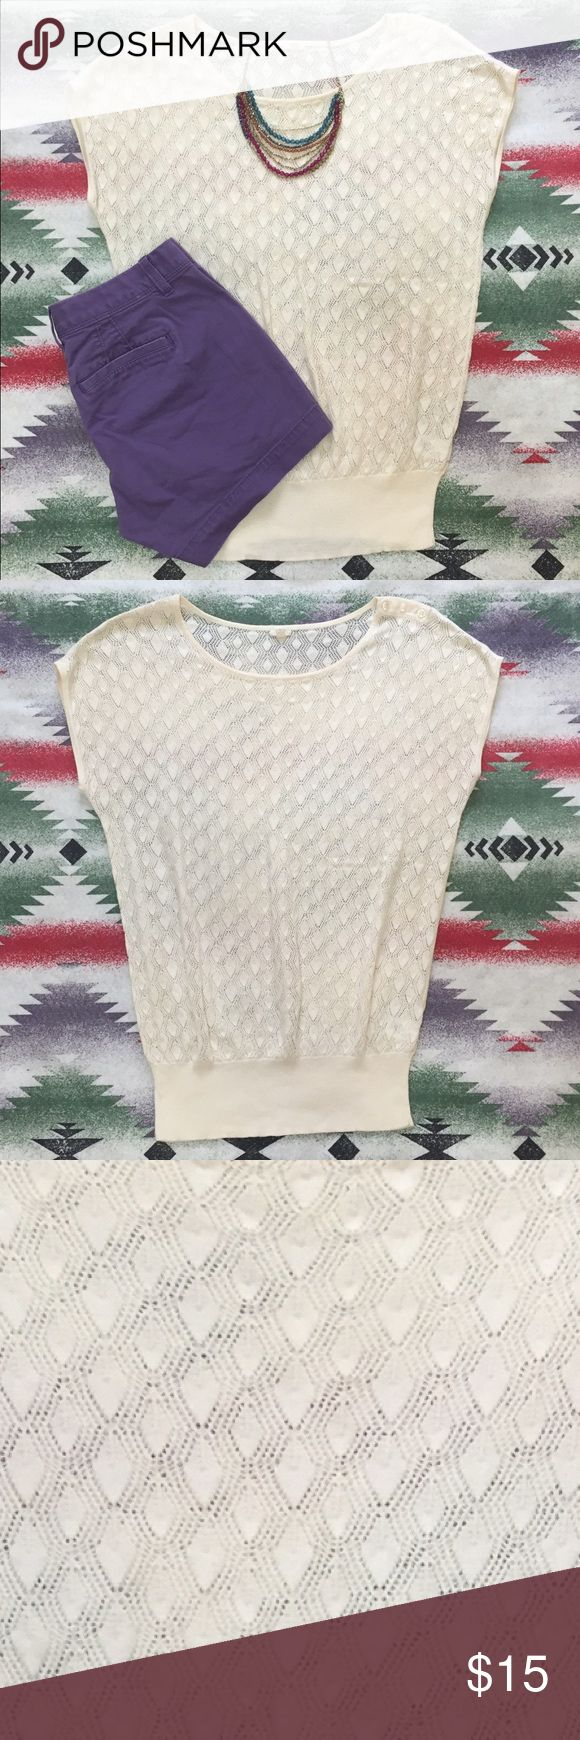 Crochet Short Sleeve Top Super Cute One Shoulder Button Detail ... Loose All Over to Form Fitting Band at Waist ... Wear with a Bandeau or Camisole! ***Only Worn TWICE*** 100% Cotton ... Machine Wash Cold & Lay Flat to Dry. J. Crew Tops